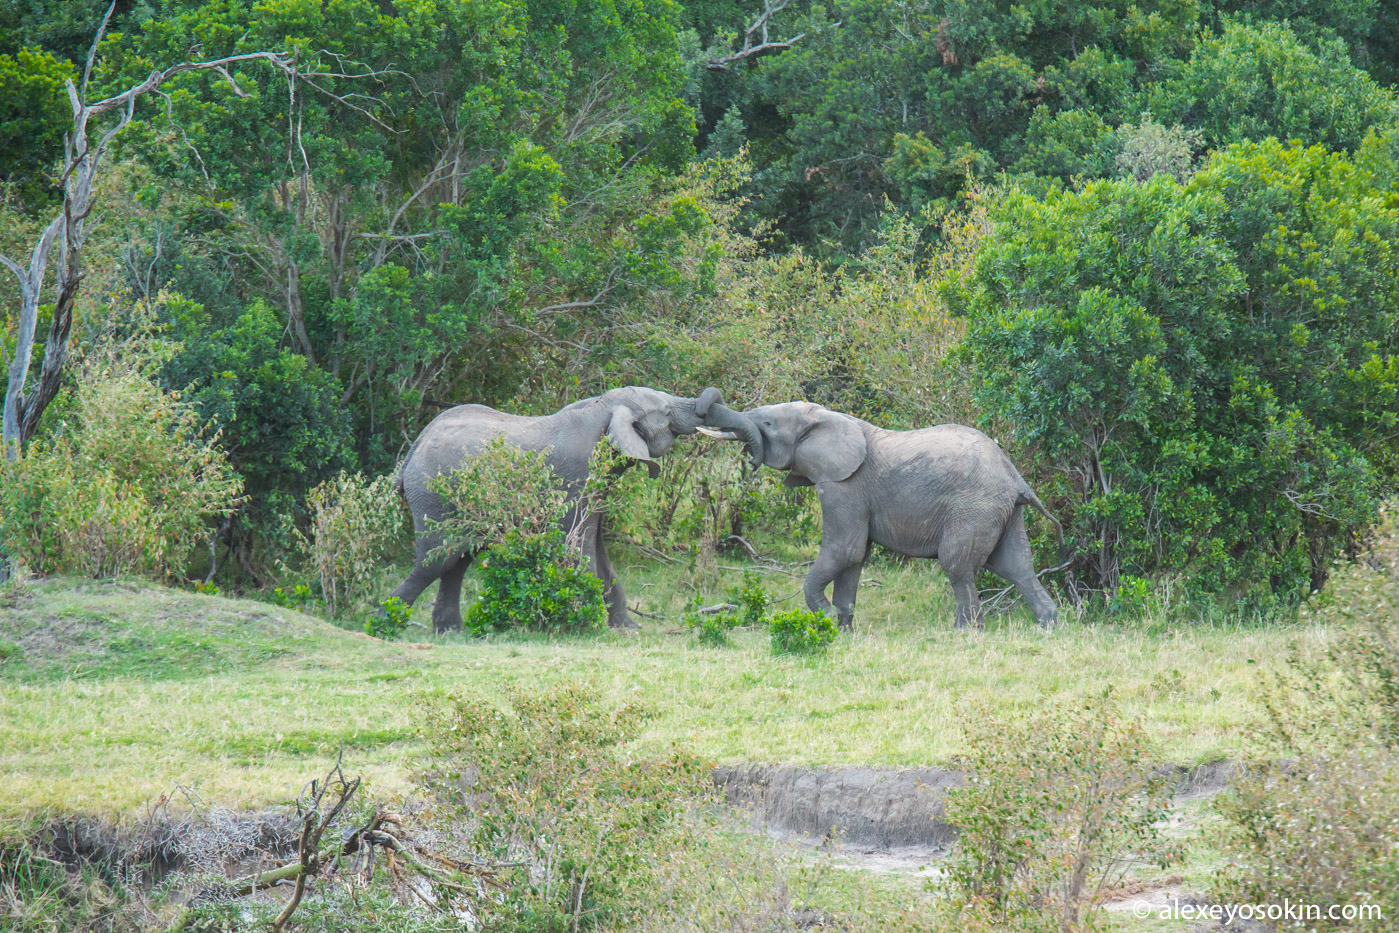 How two elephants measured their trunks ... PELICAN, elephants, PENTAX, let, when, all the same, age, guarantee, cases, family, after, only, quickly, roads, Photo equipment, ATTENTION, more, saw, swinging, nature